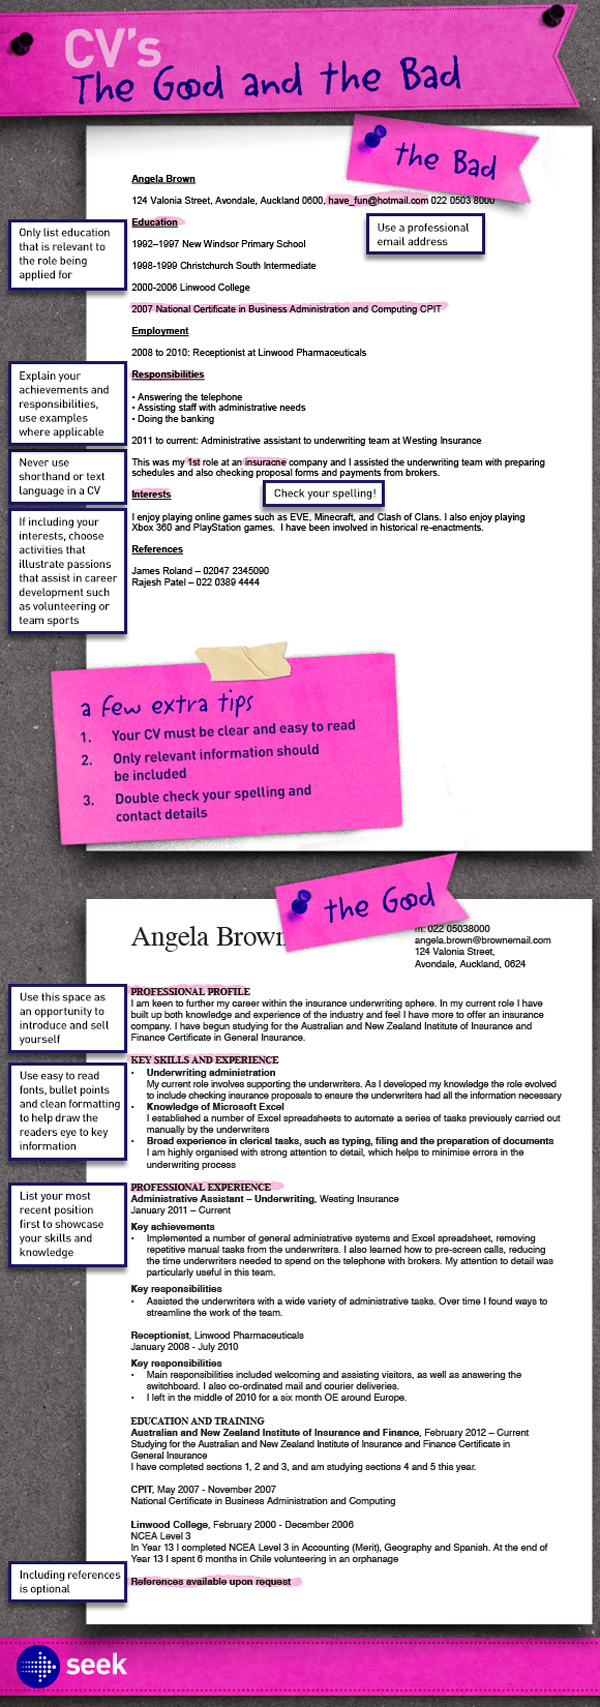 How To Write A Excellent Resume Cv S The Good And The Bad How To Write A Killer Cv To Get The